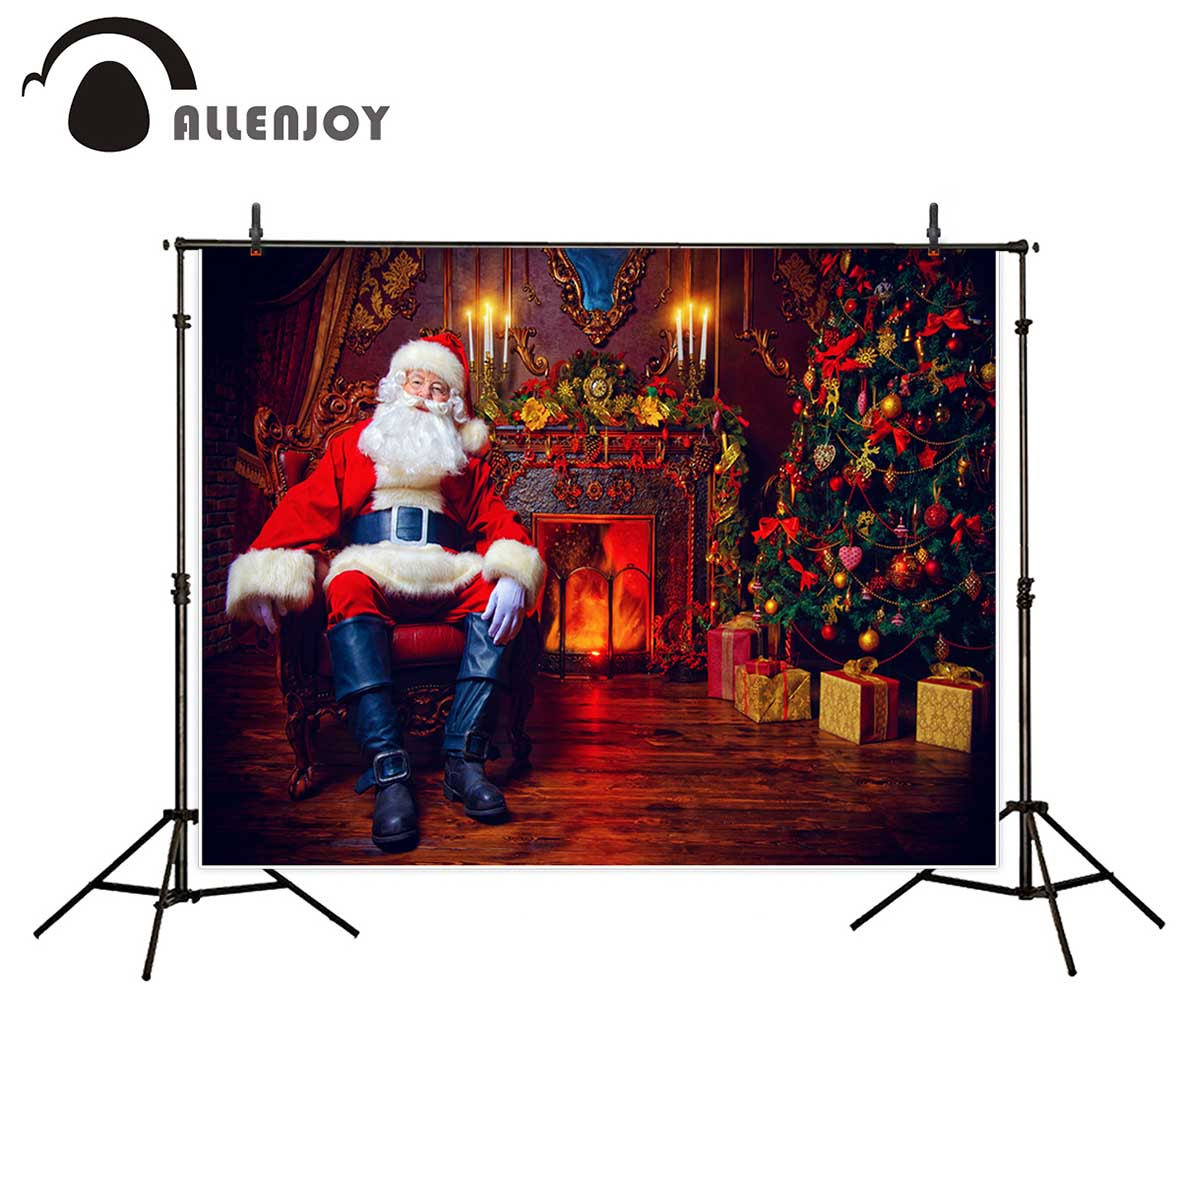 Allenjoy photography background santa claus indoor fireplace christmas tree resting armchair backdrop Photo background studio mehofoto christmas tree backdrop fireplace photo background white brick wall photography backdrops for wood floor props 914